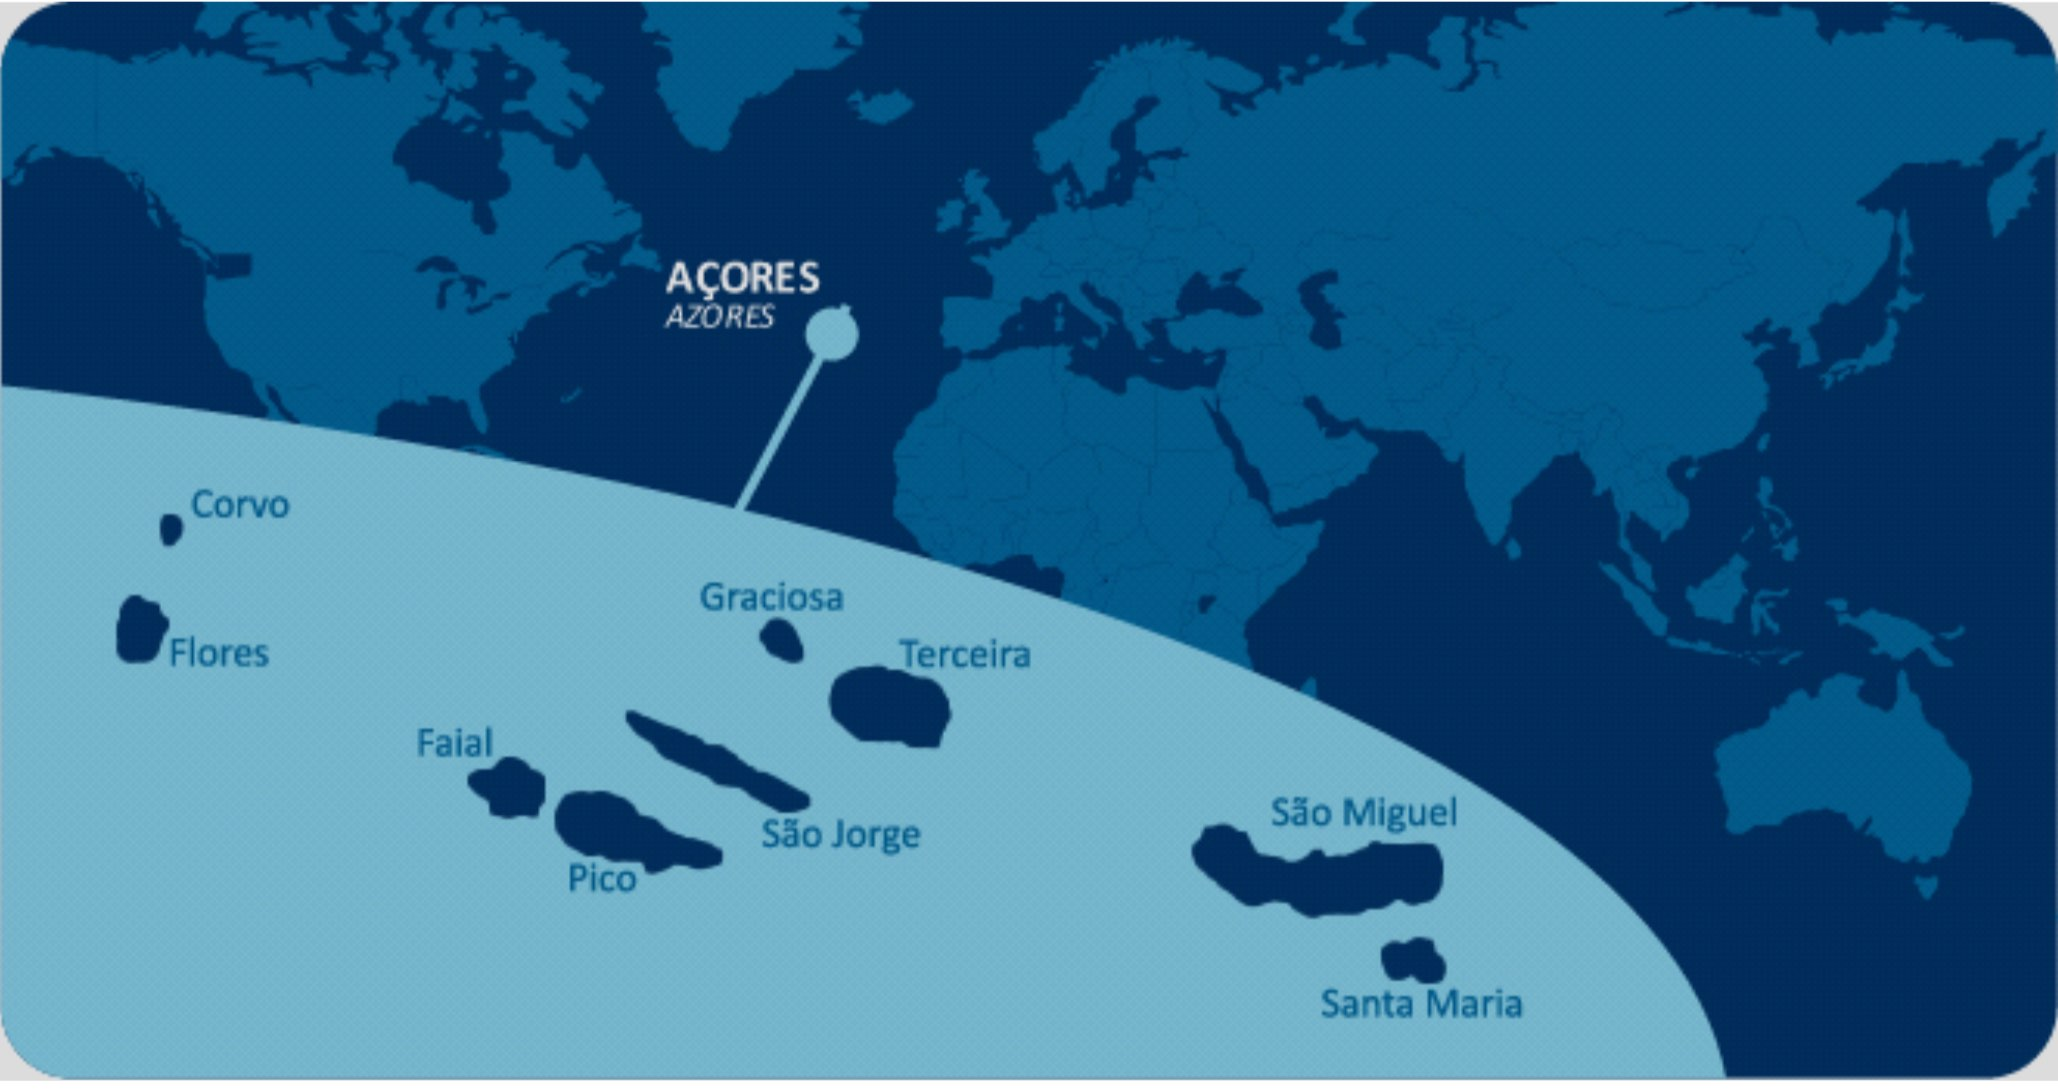 Azores location map